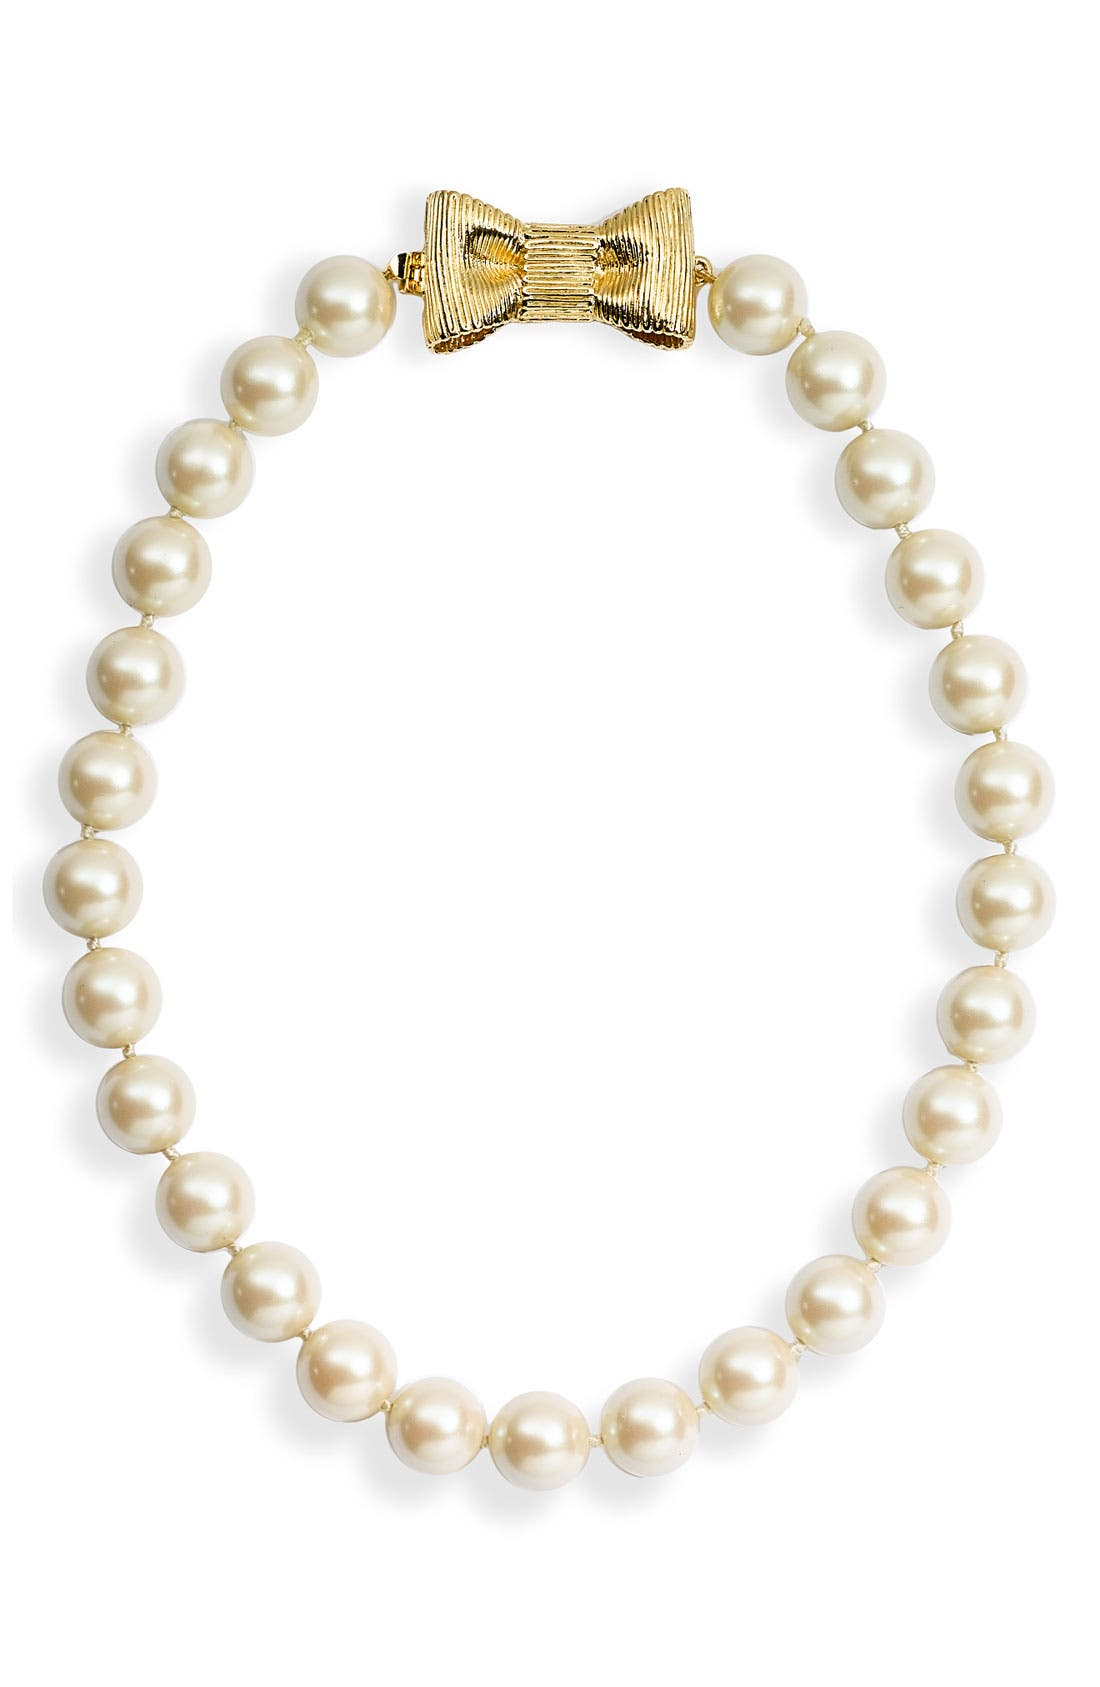 KATE SPADE NEW YORK,                             'all wrapped up' short glass pearl necklace,                             Main thumbnail 1, color,                             900